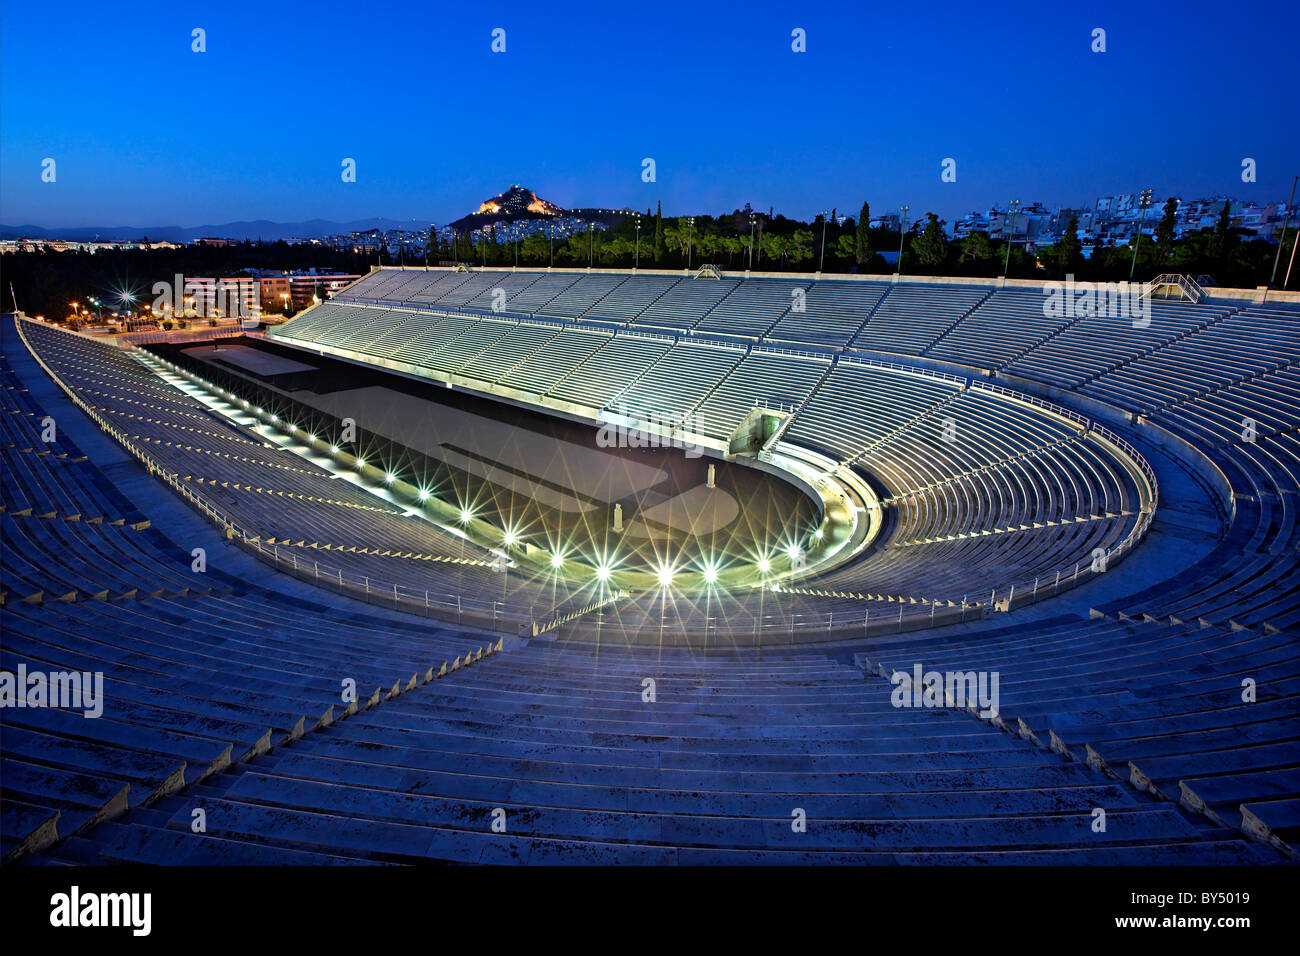 "The Panathenaic (or ""Panathinaiko"") stadium, also known as ""Kallimarmaro"", in the ""blue"" hour. Athens, Greece Stock Photo"